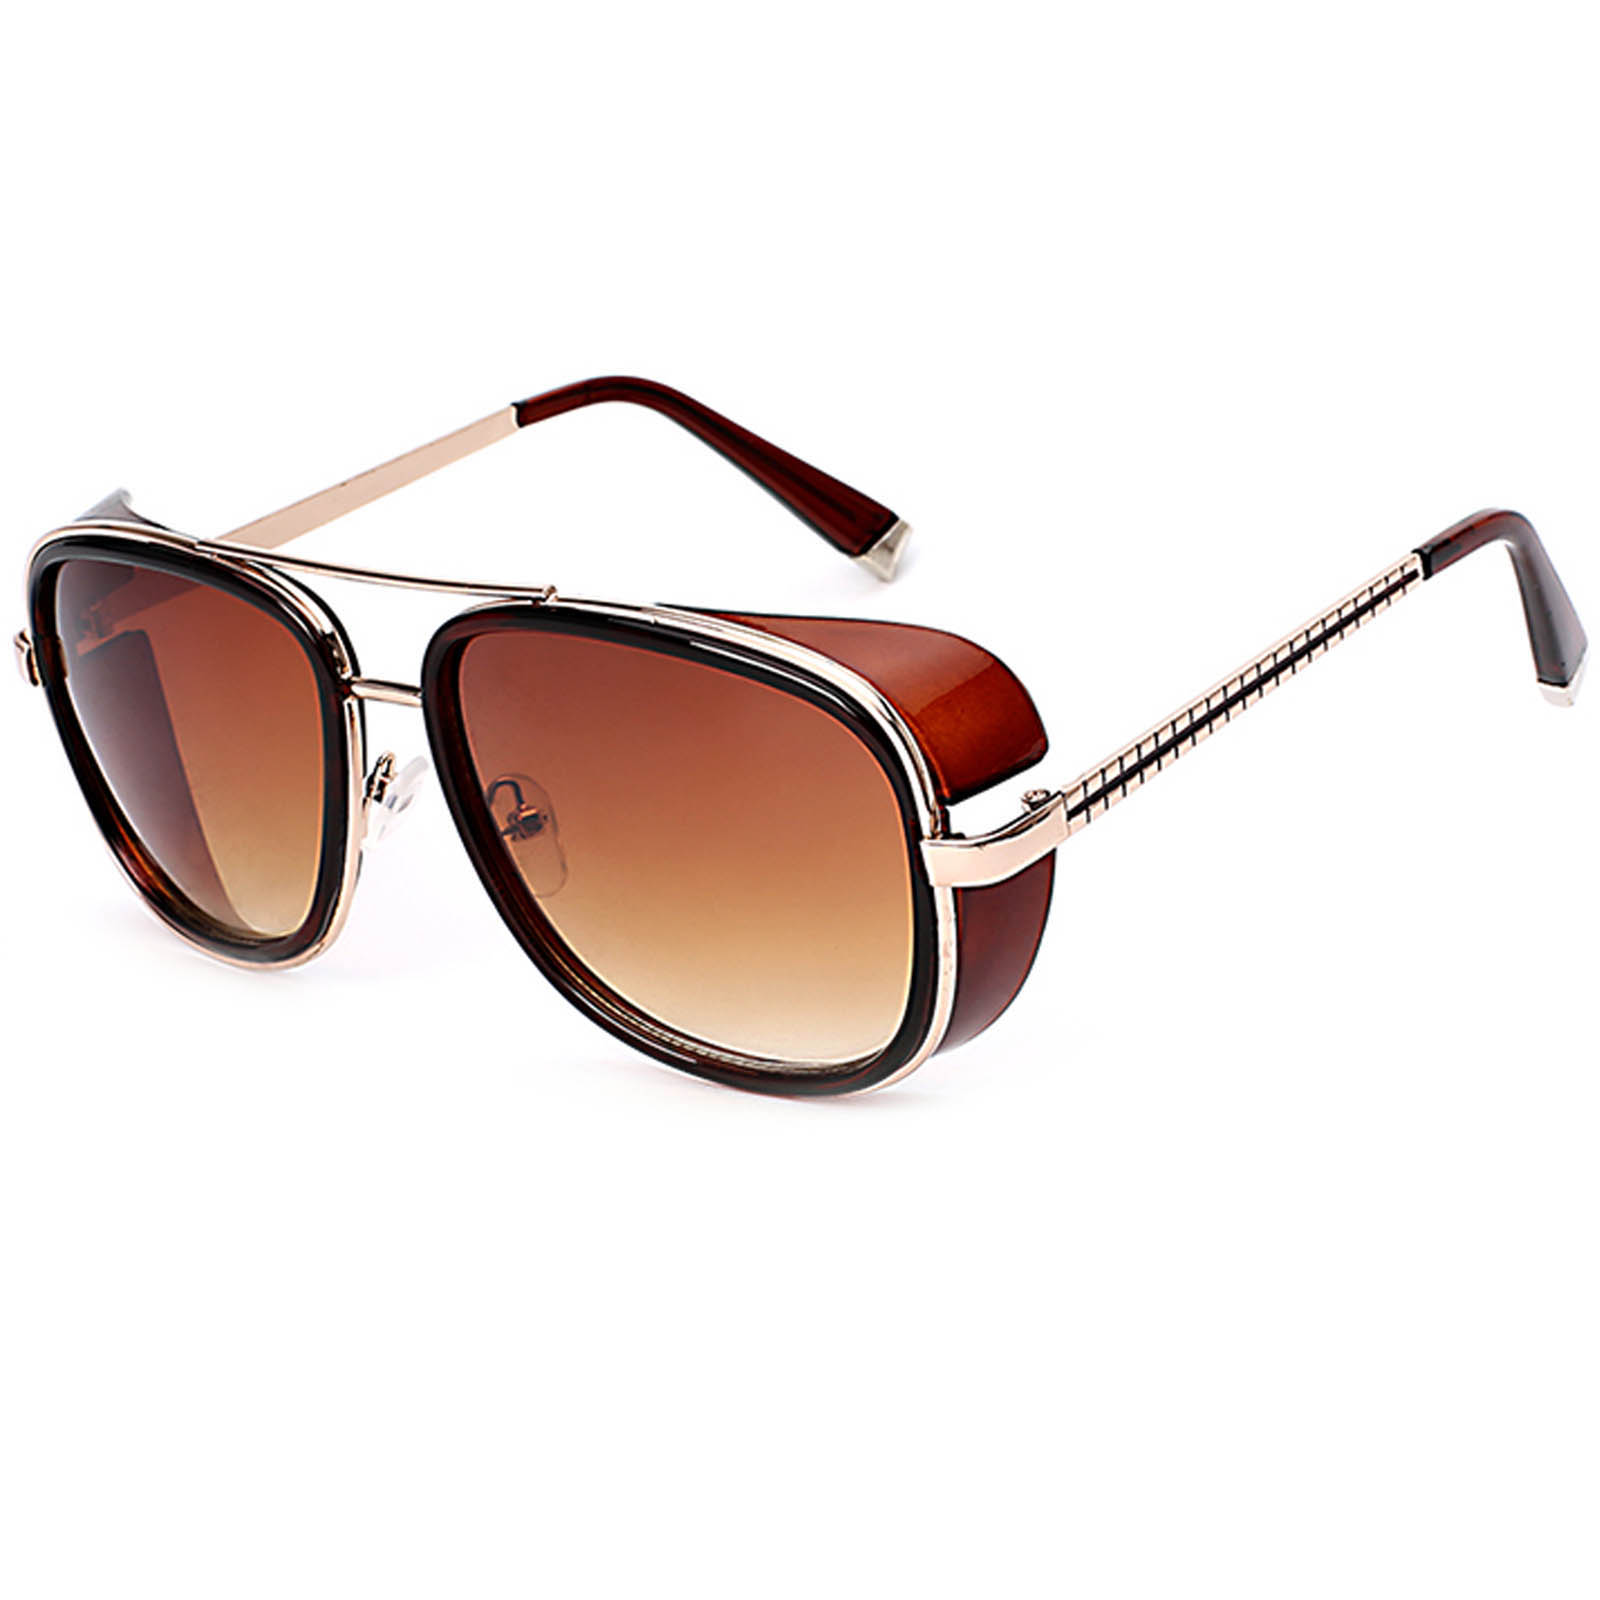 OWL ® 002 C3 Aviator Eyewear Sunglasses Women's Men's Metal Brown Frame Brown Lens One Pair